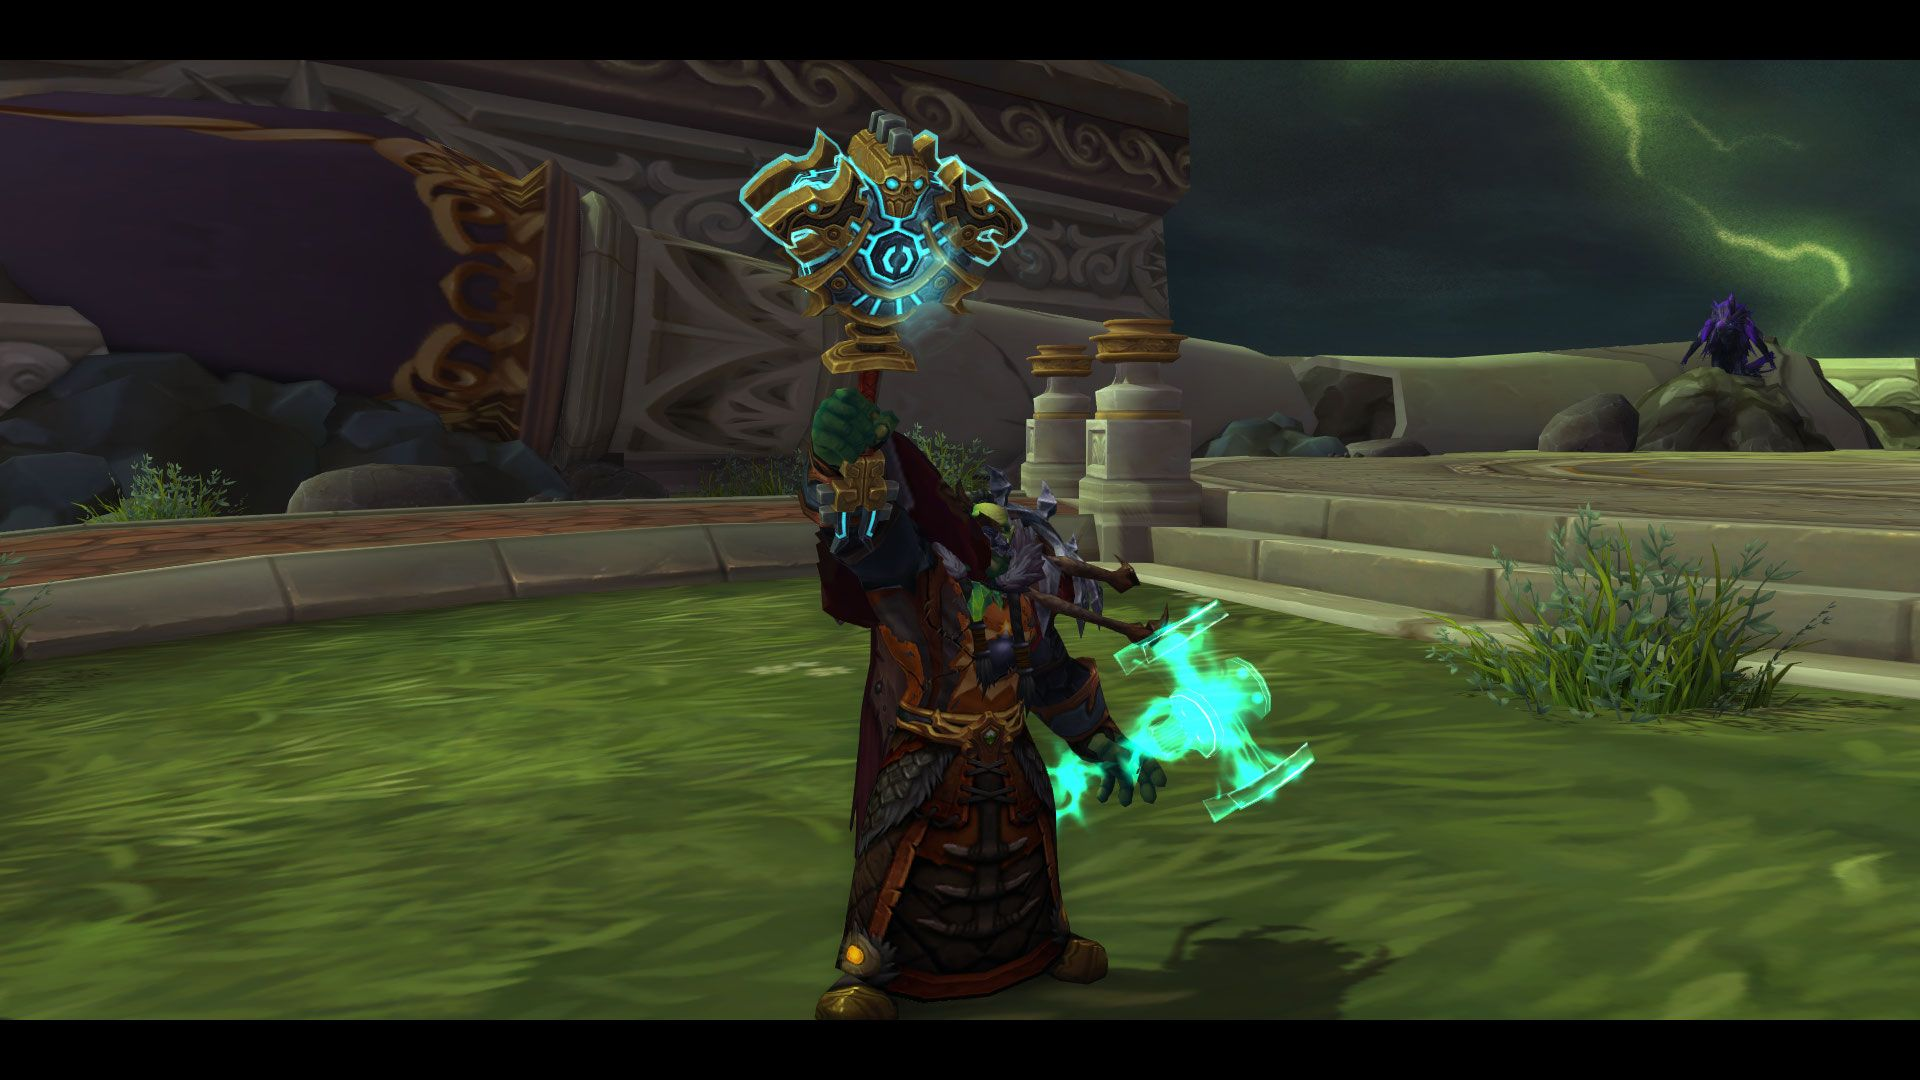 yesterday i got this sweet looking hidden artifact appearance for